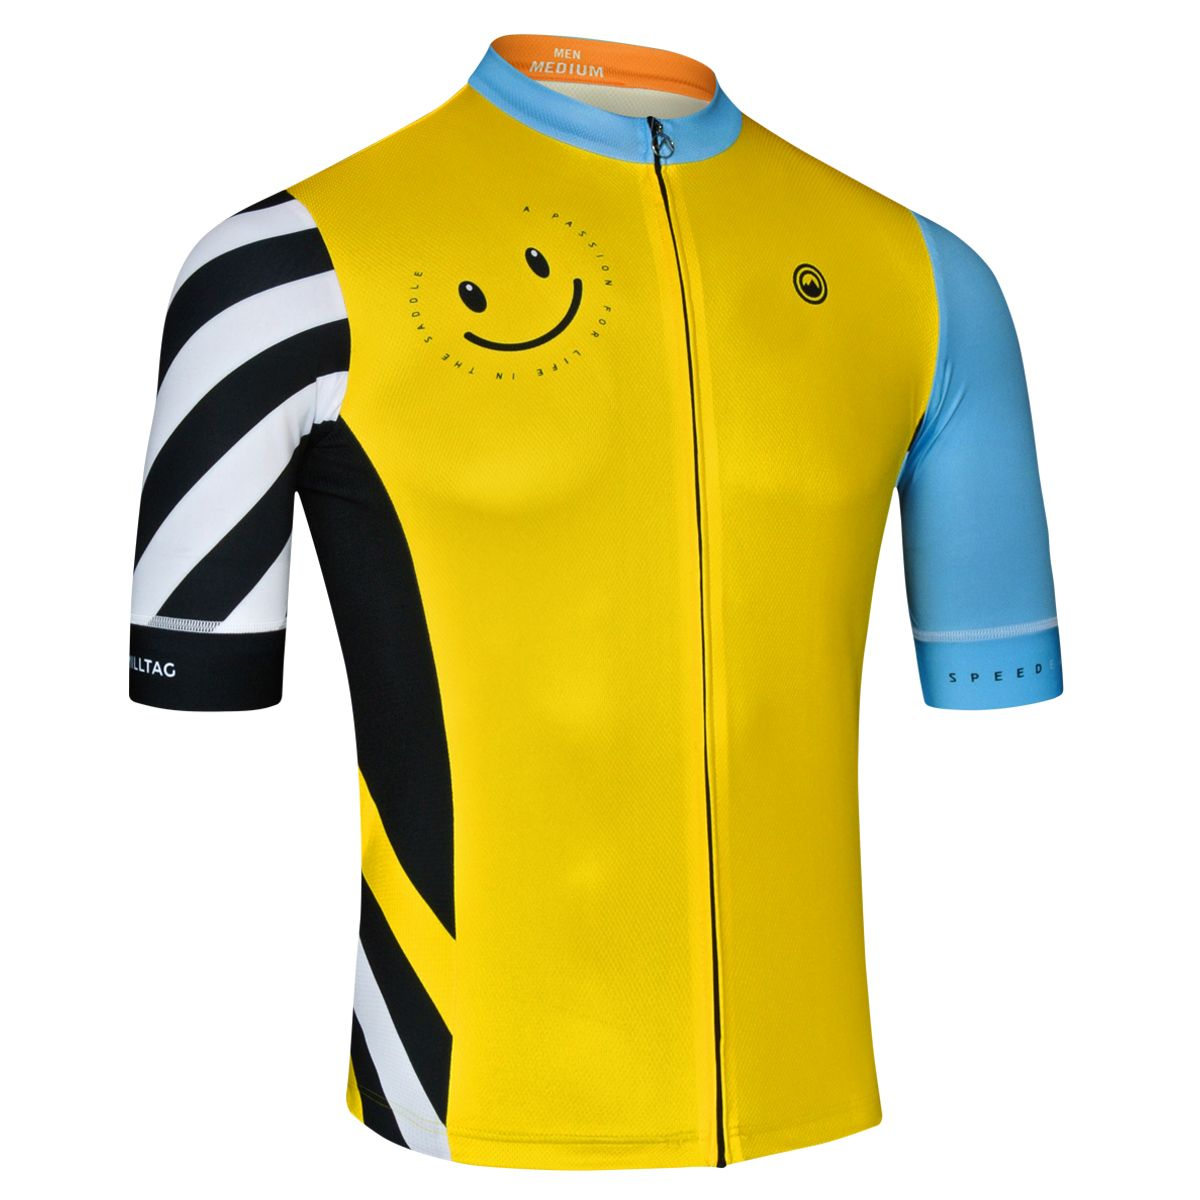 Hacienda Men Jersey - Short Sleeve Cycling Jersey by Milltag